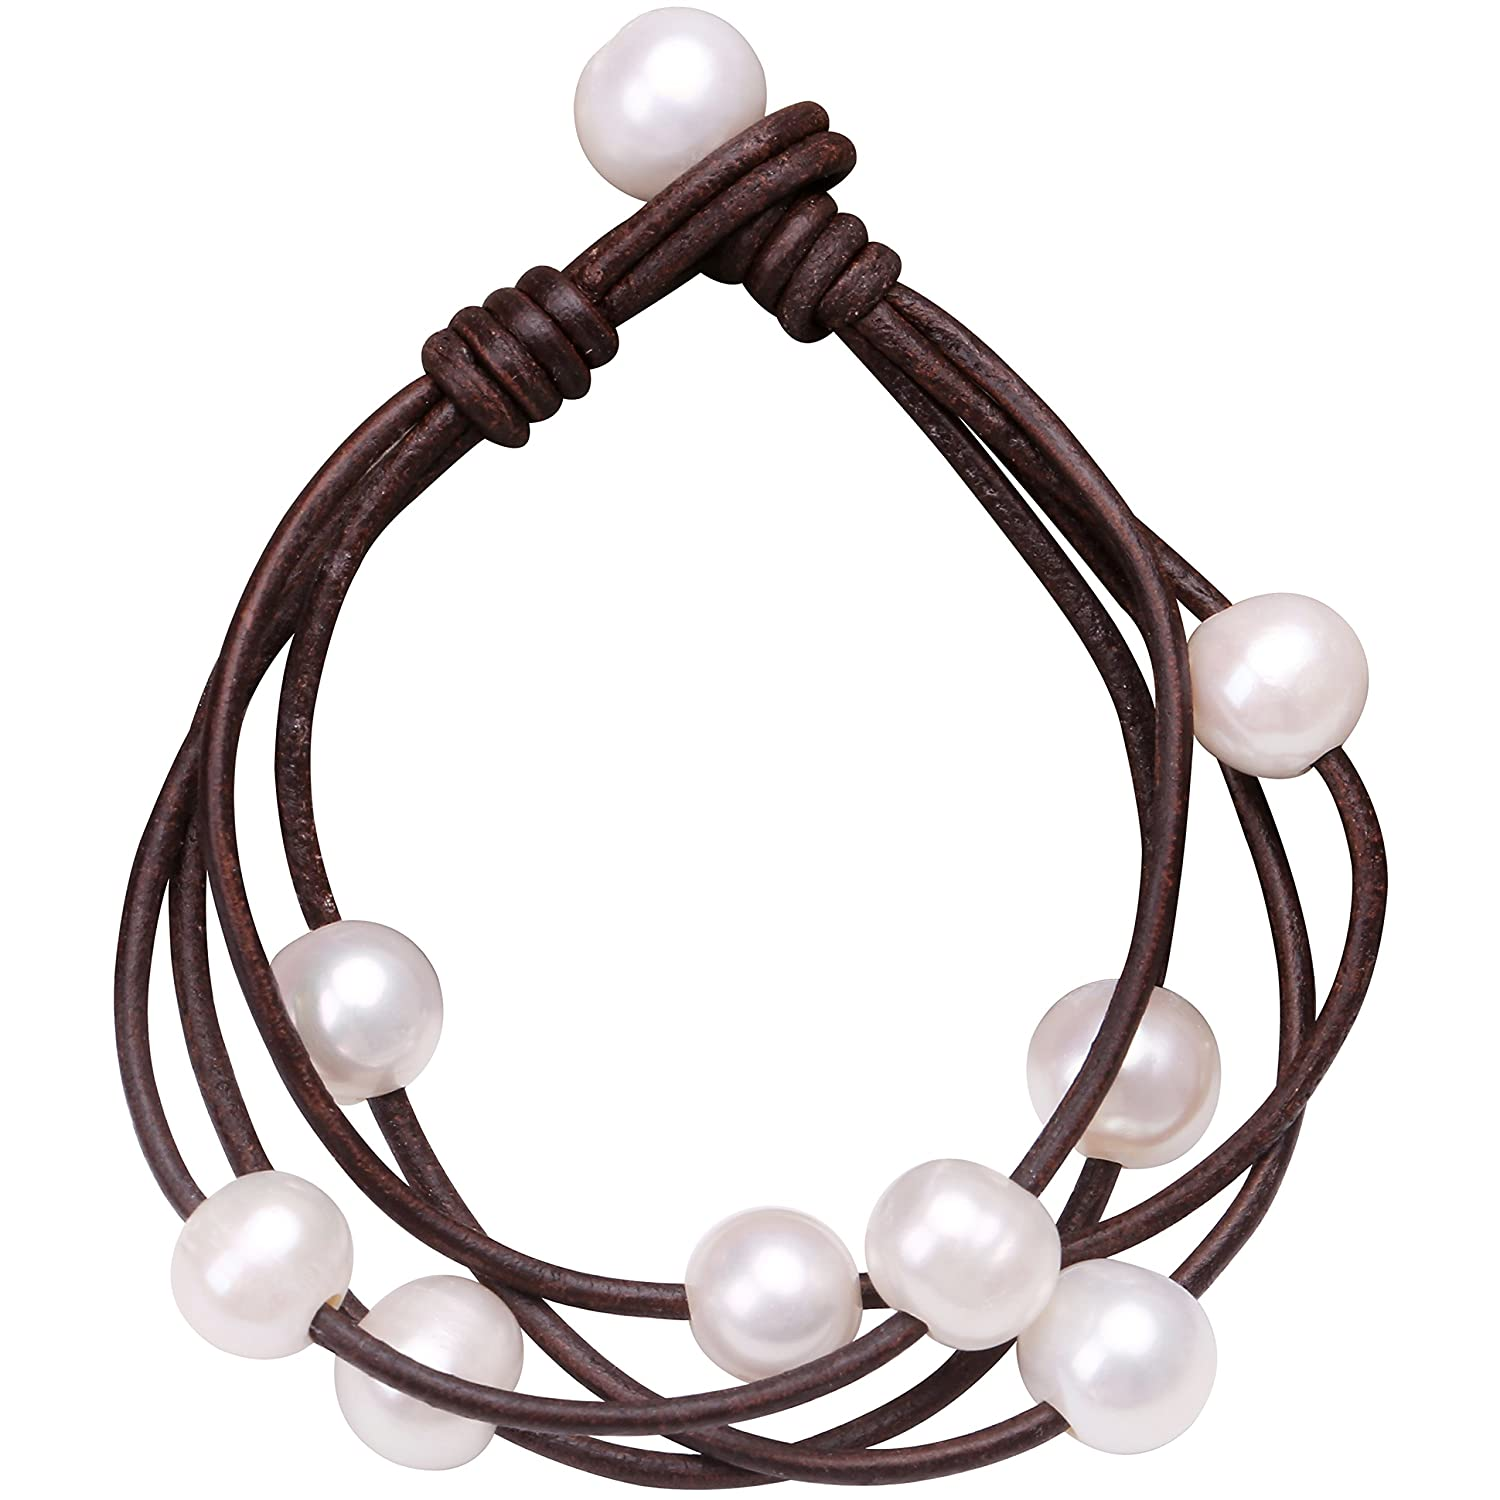 Cultured Freshwater Pearl Wrap Bracelet on Multi Strands Leather Beaded Jewelry for Women by Aobei